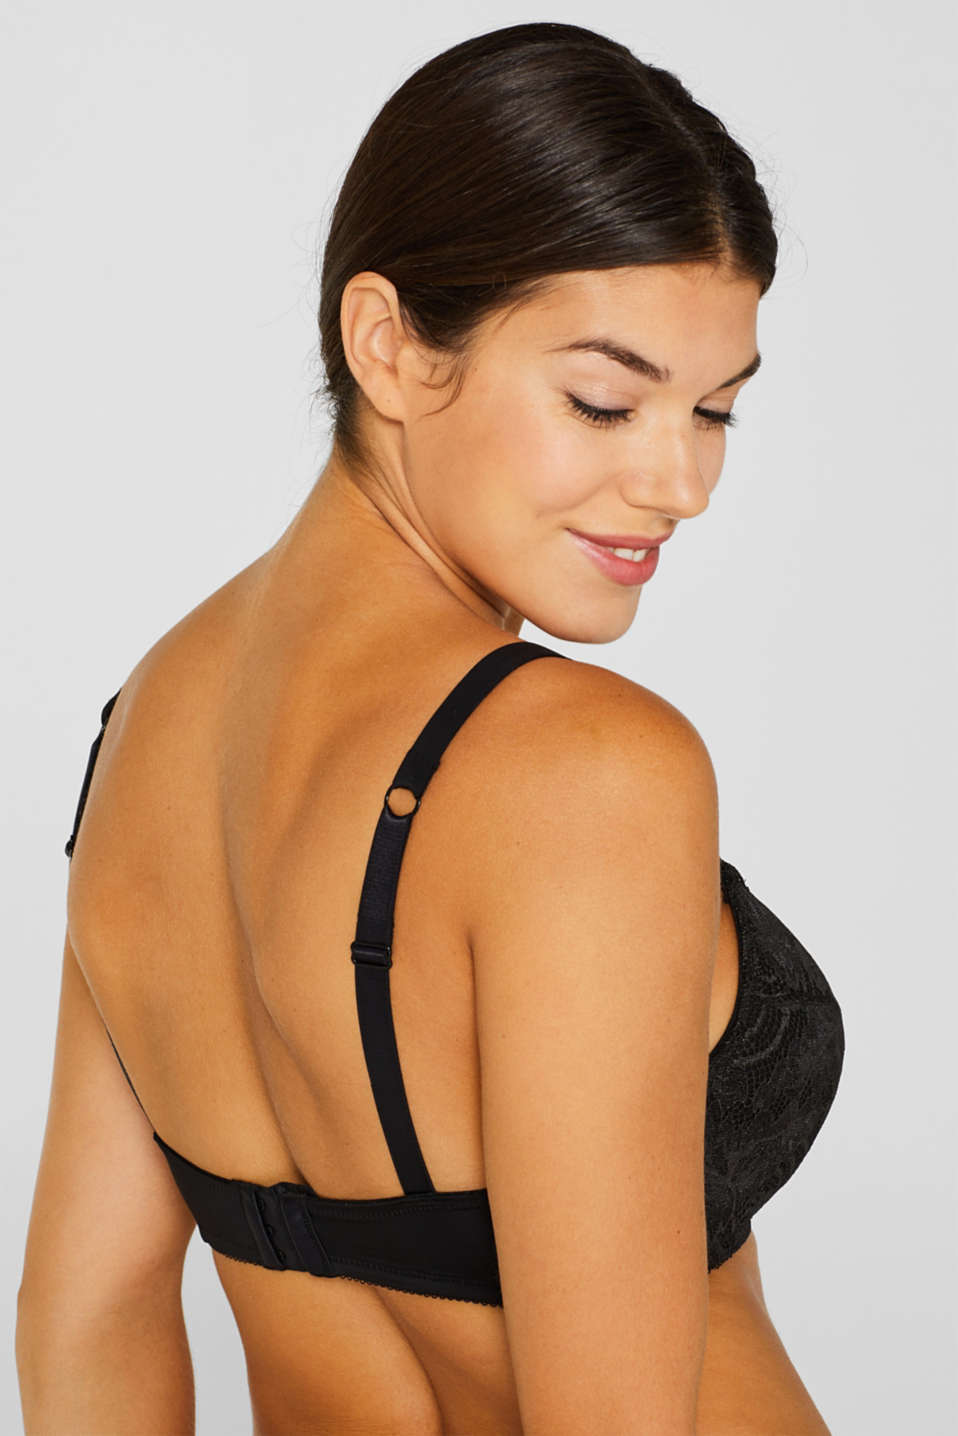 Padded, non-wired lace bra for large cup sizes, BLACK, detail image number 3